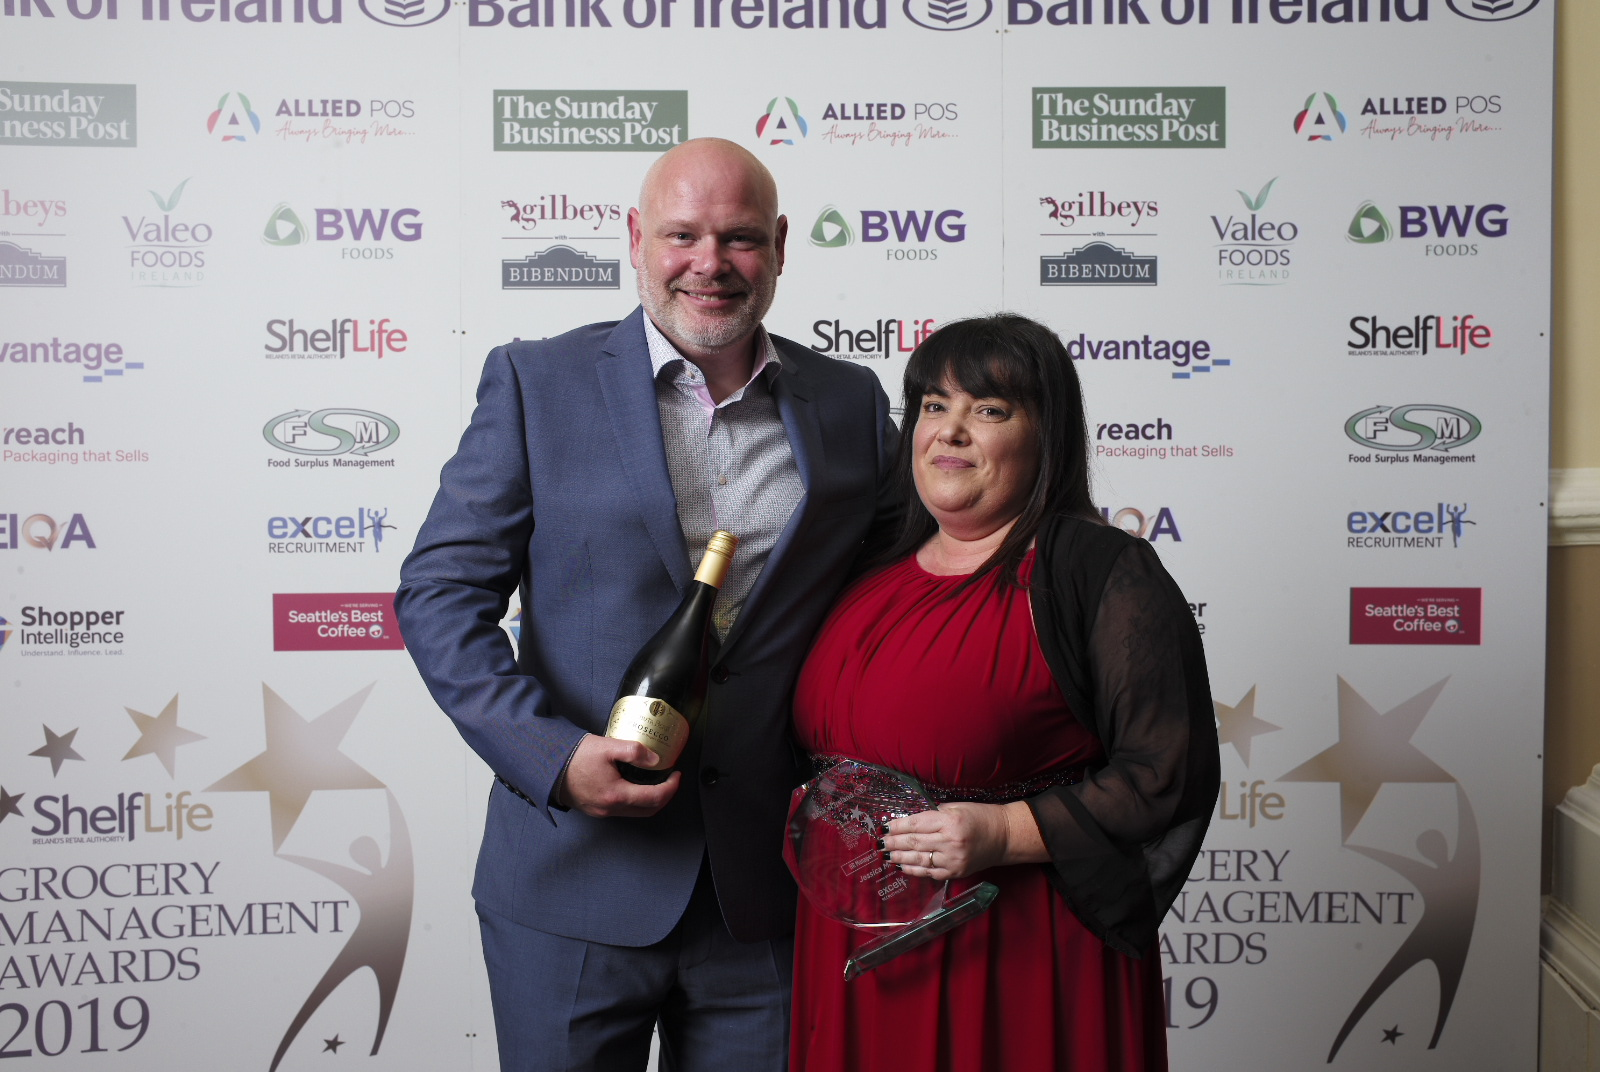 CEO Barry Whelan presents HR Manager of the Year to Jessica Maher of SuperValu Lucan